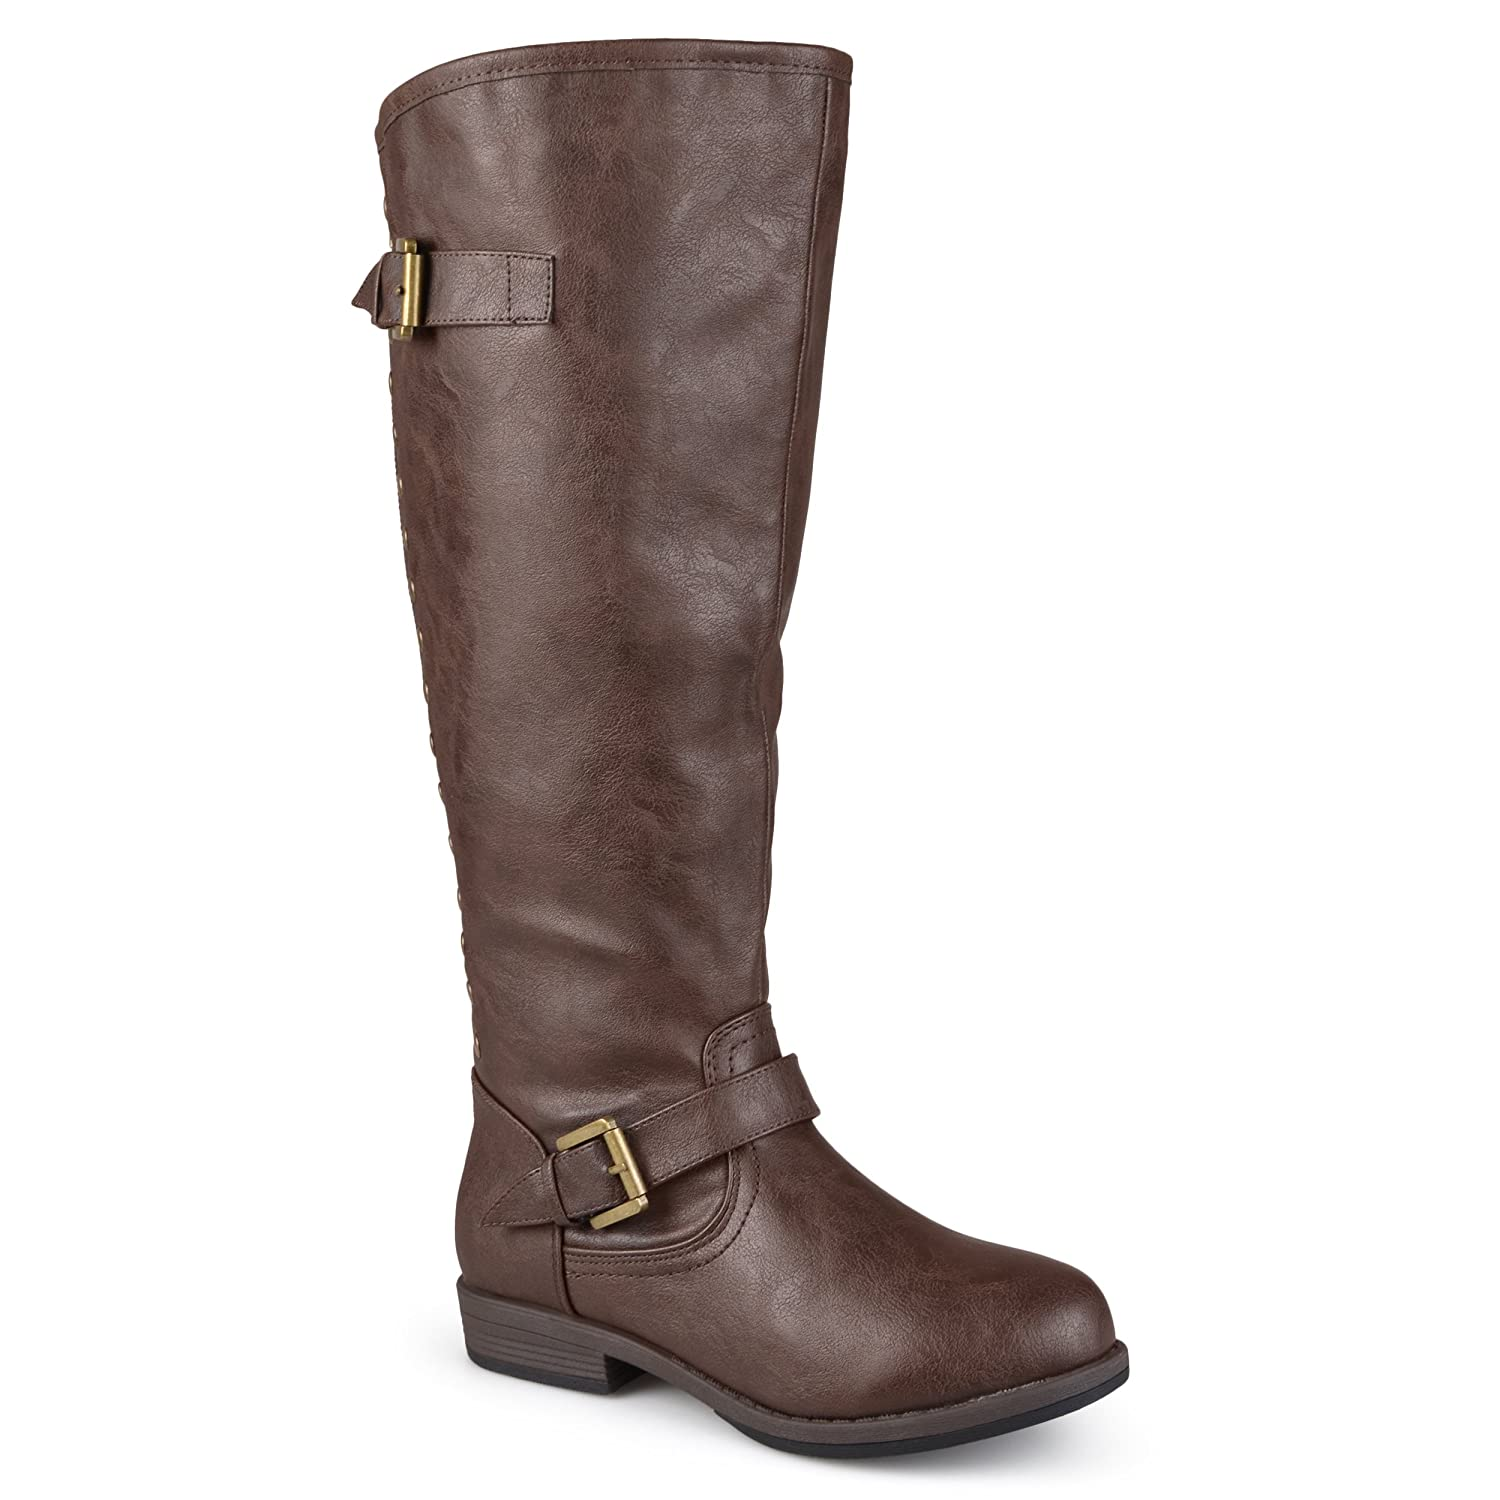 Journee Collection Womens Regular Sized, Wide-Calf and Extra Wide-Calf Studded Knee-High Riding Boot B00FBZXX62 9 W US|Brown